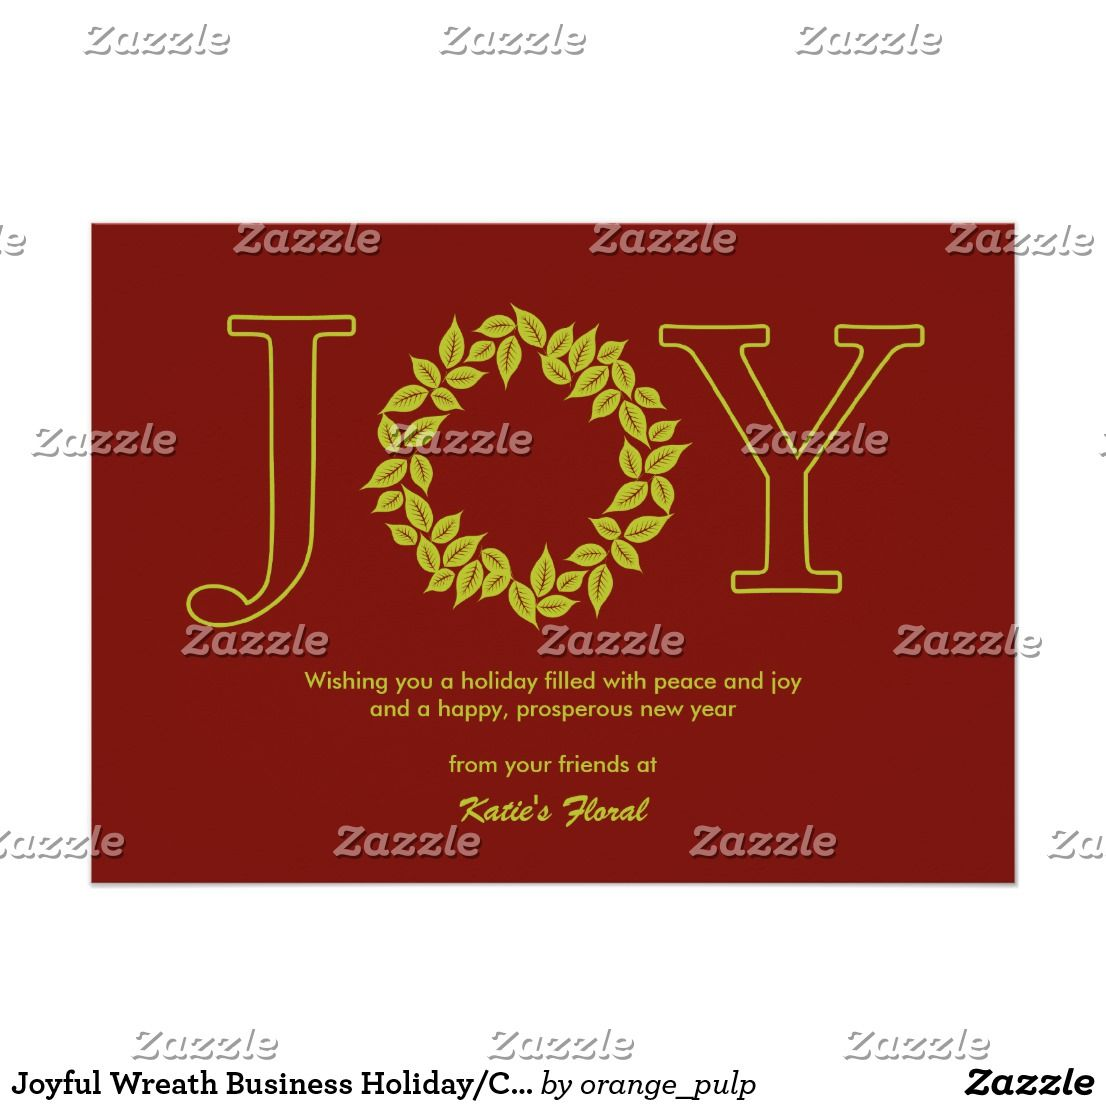 Joyful wreath business holidaychristmas cards spread some joy joyful wreath business holidaychristmas cards spread some joy this holiday season with these chic and stylish holiday cards from orange pulp design magicingreecefo Images